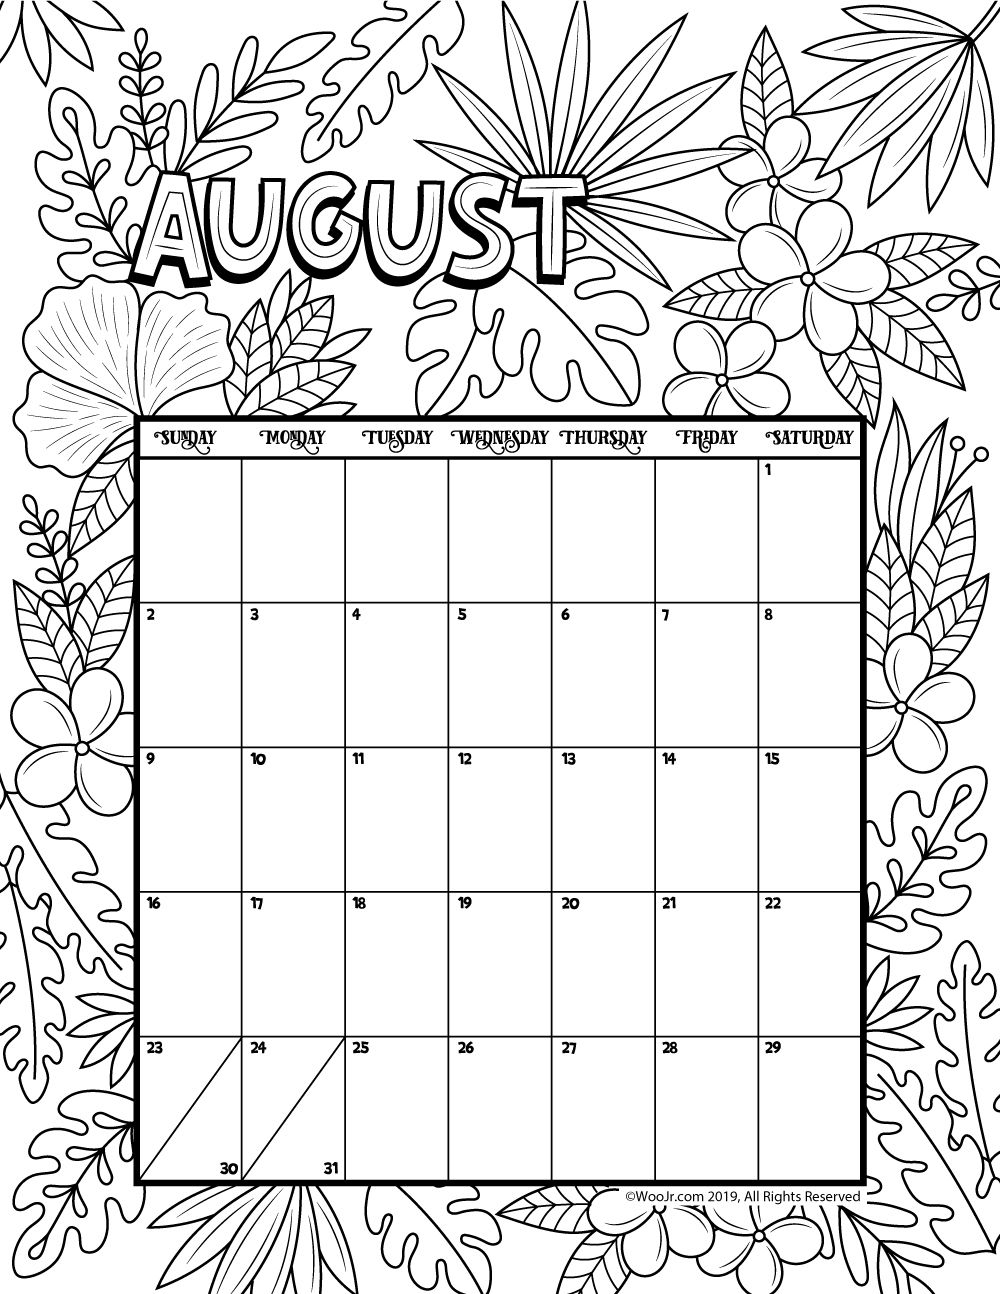 Catch August 2021 Coloring Calendars